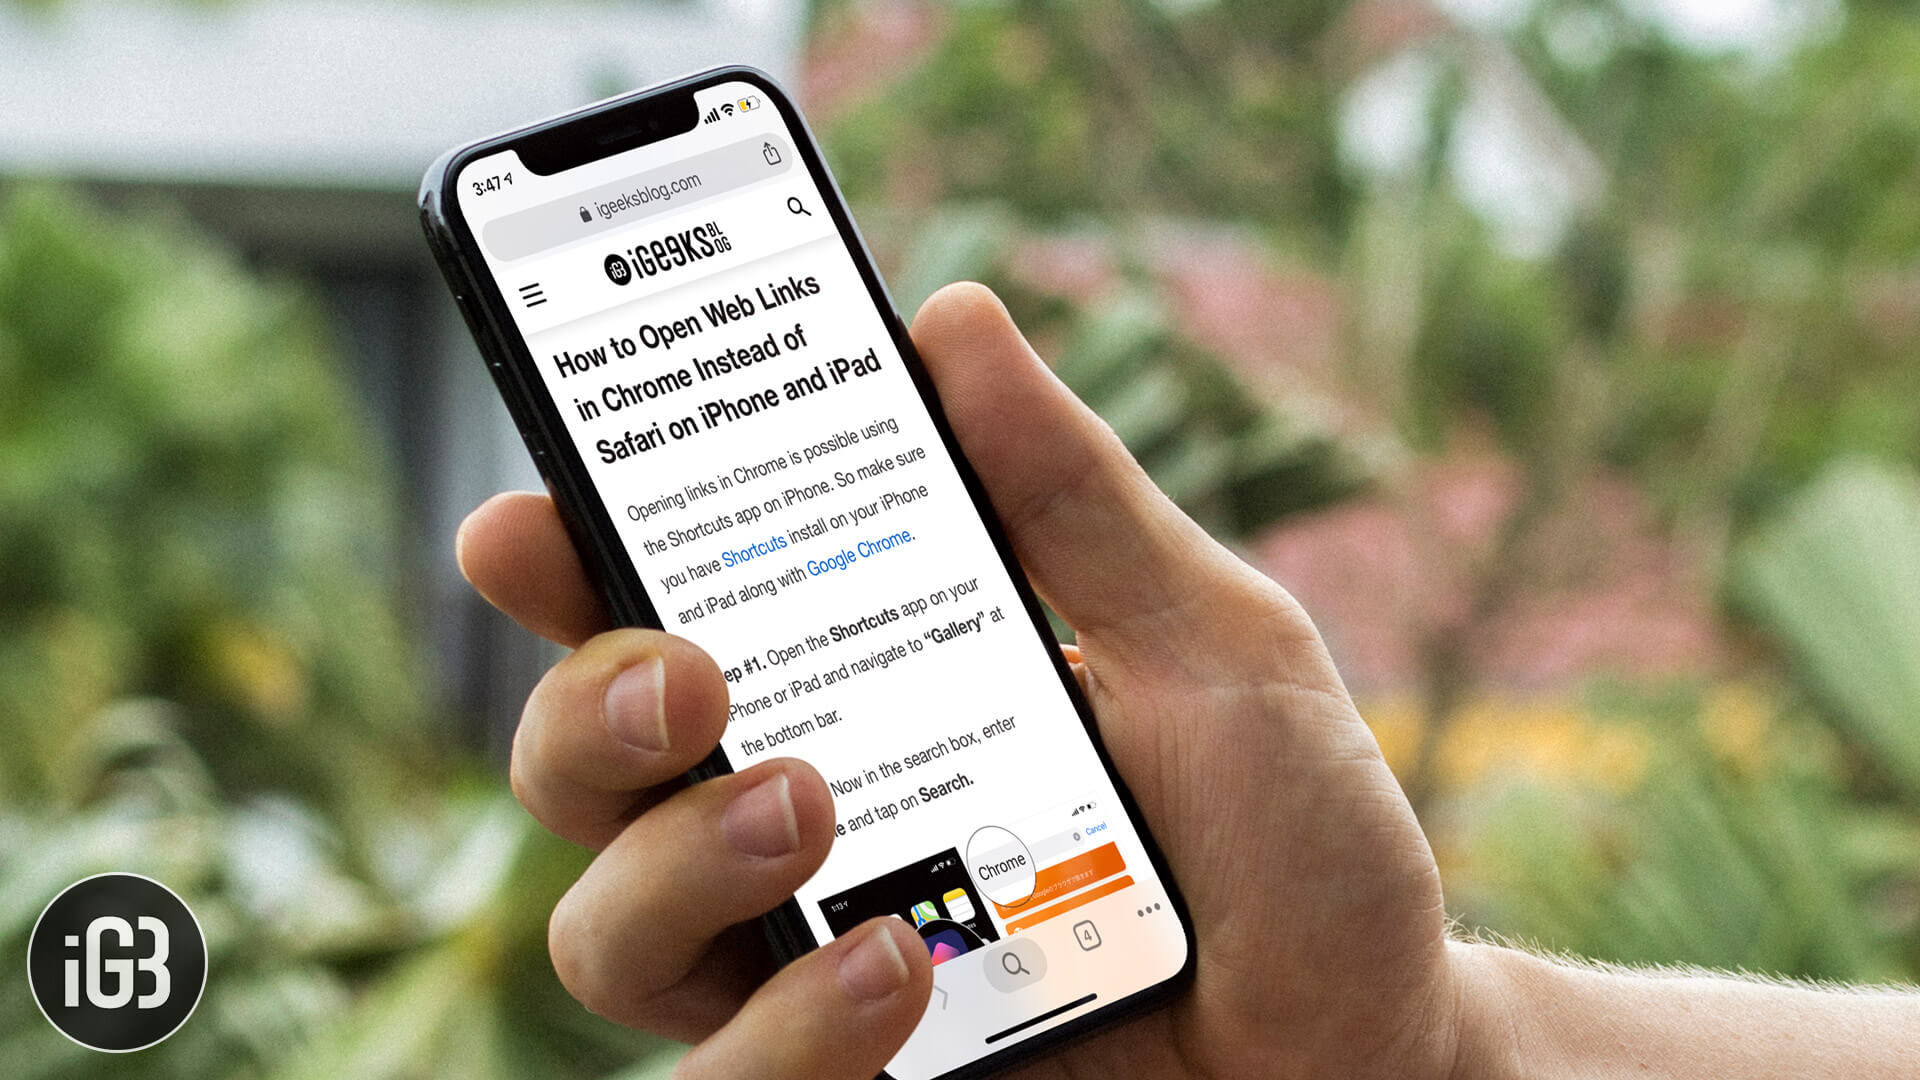 How to Open Links in Chrome on iPhone or iPad